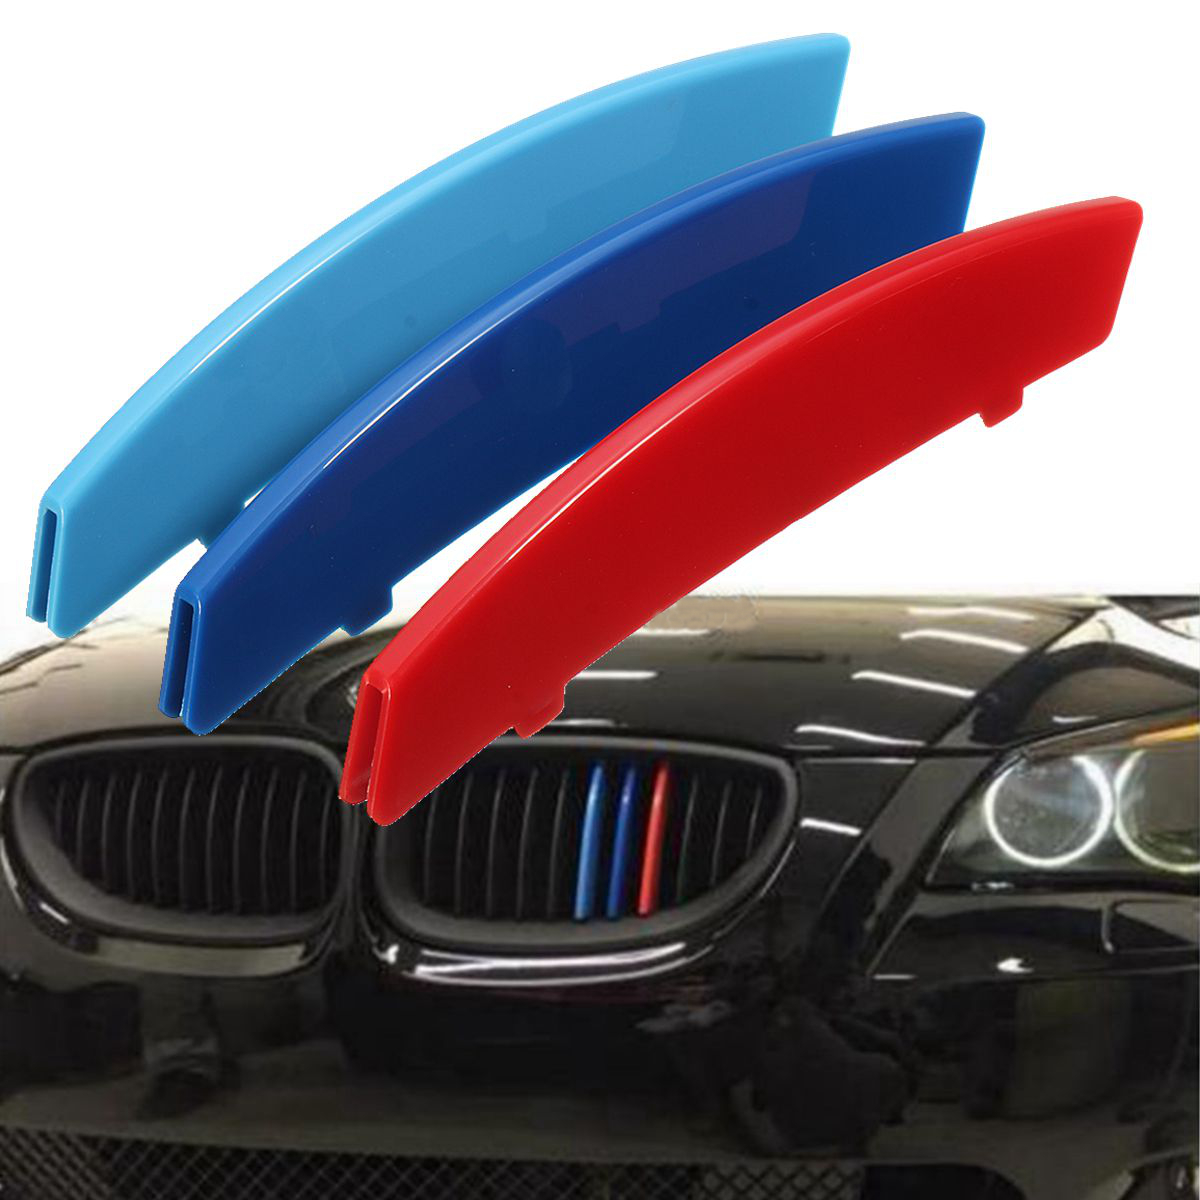 3pcs Car 3D M Styling Front Grille Trim Strip Cover Bumper Stripes Cover Stickers for BMW 5 Series E60 2004-2010